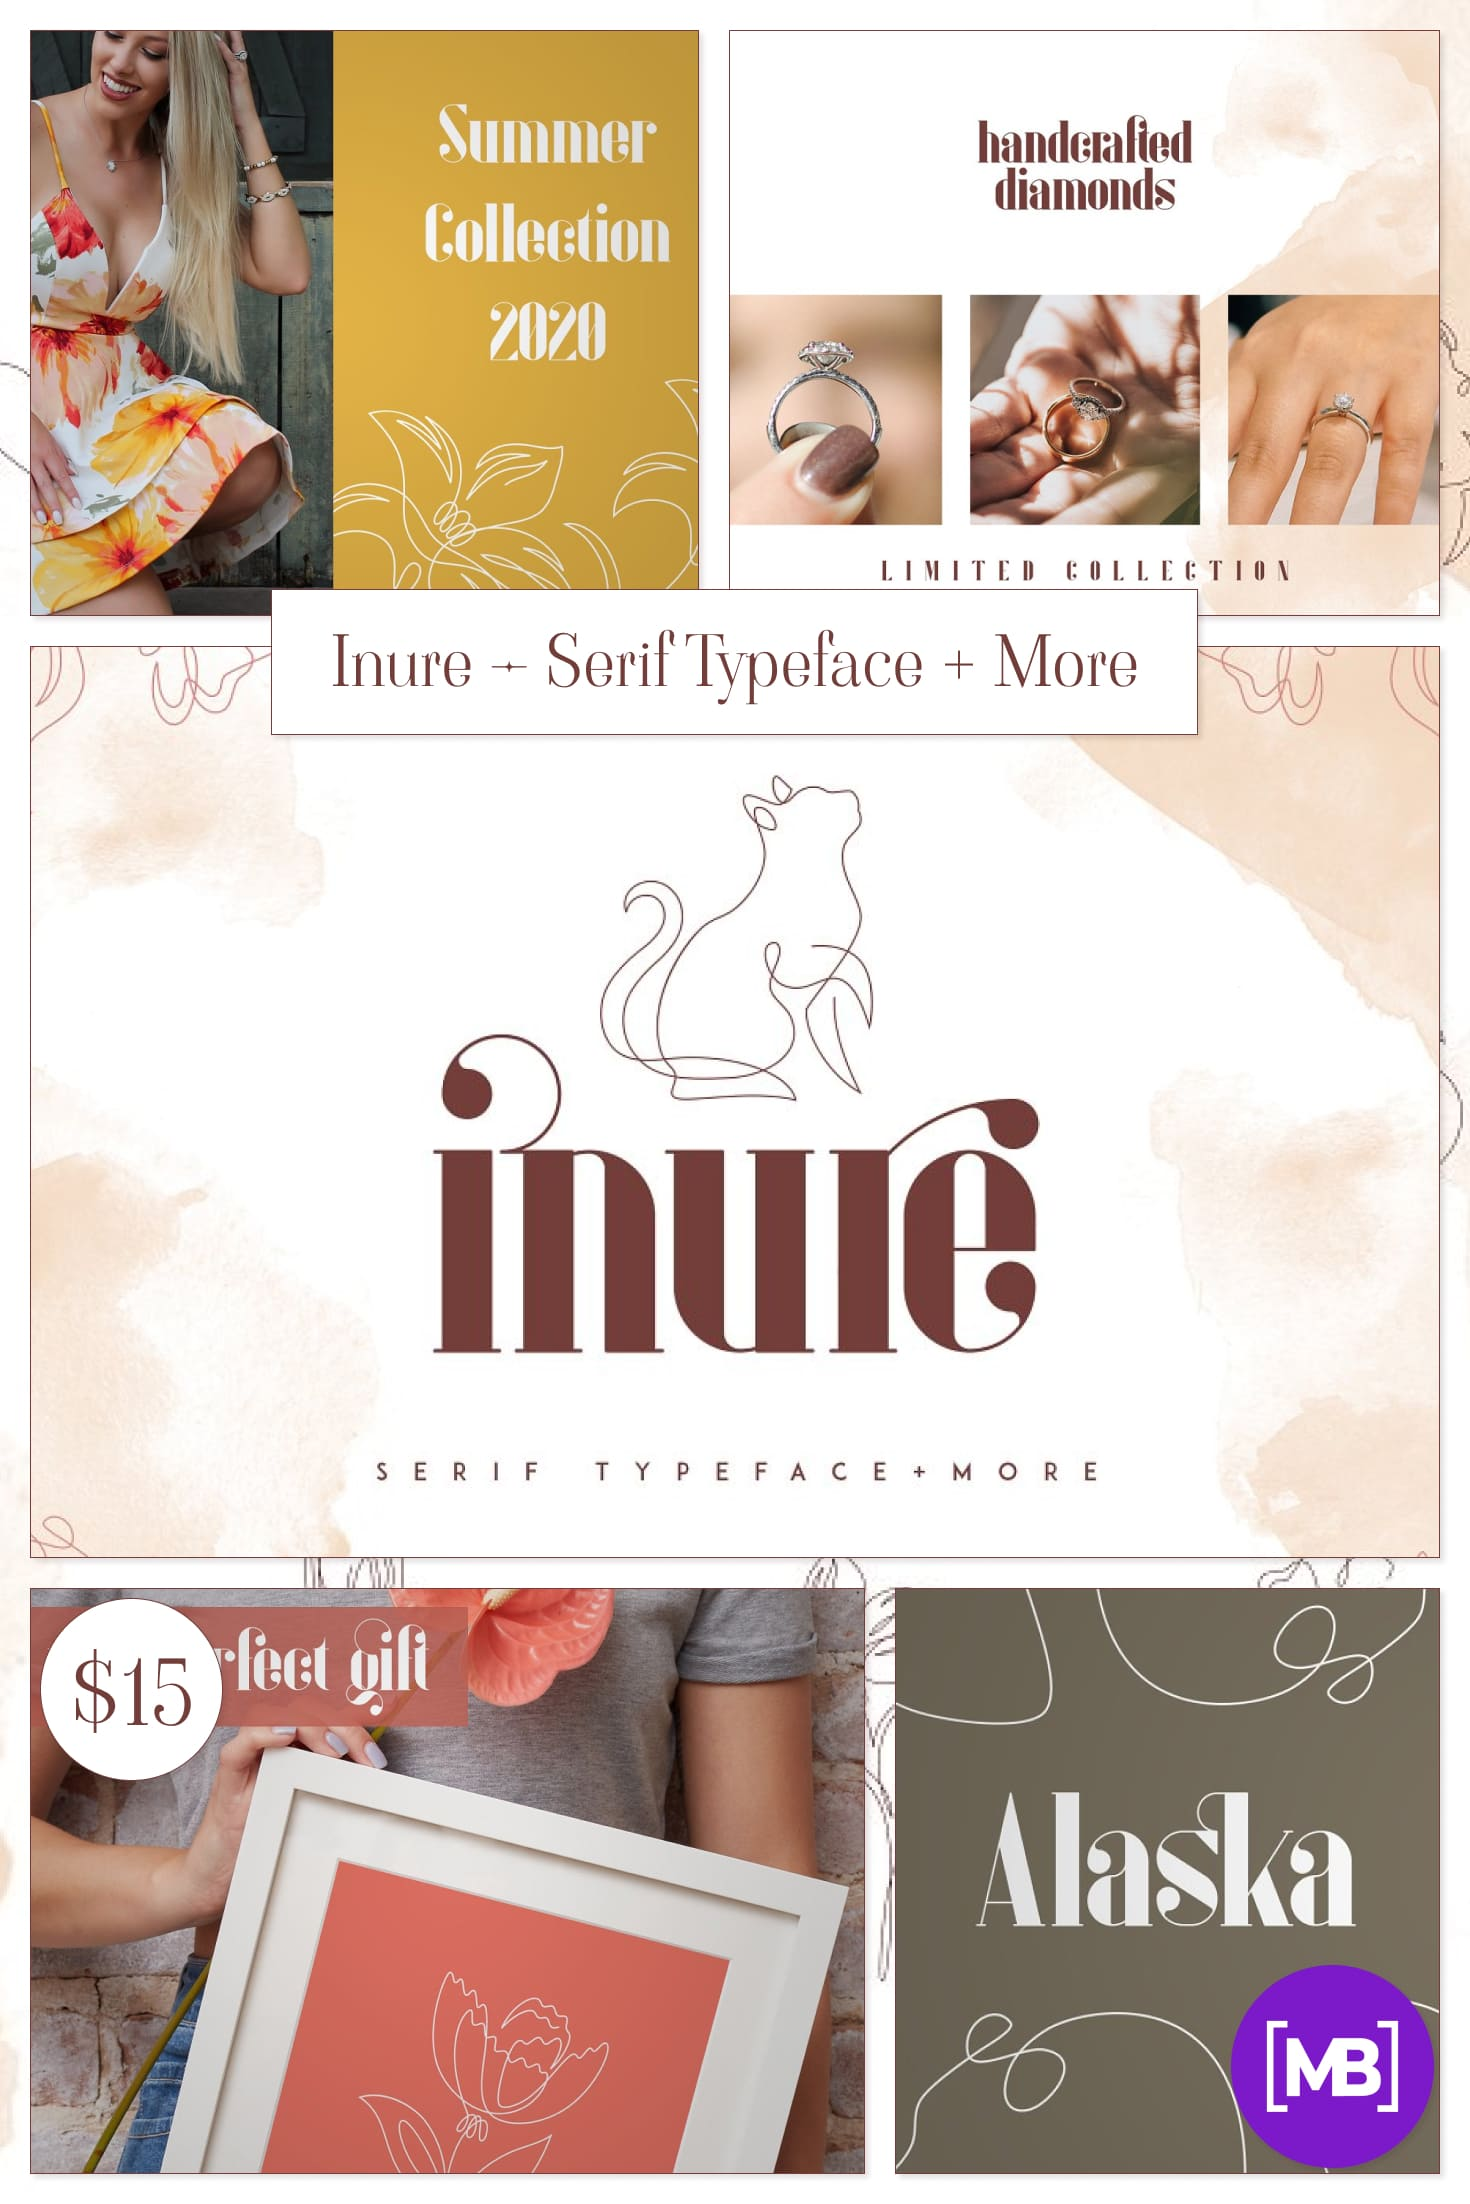 Inure - Serif Typeface + More. Collage Image.